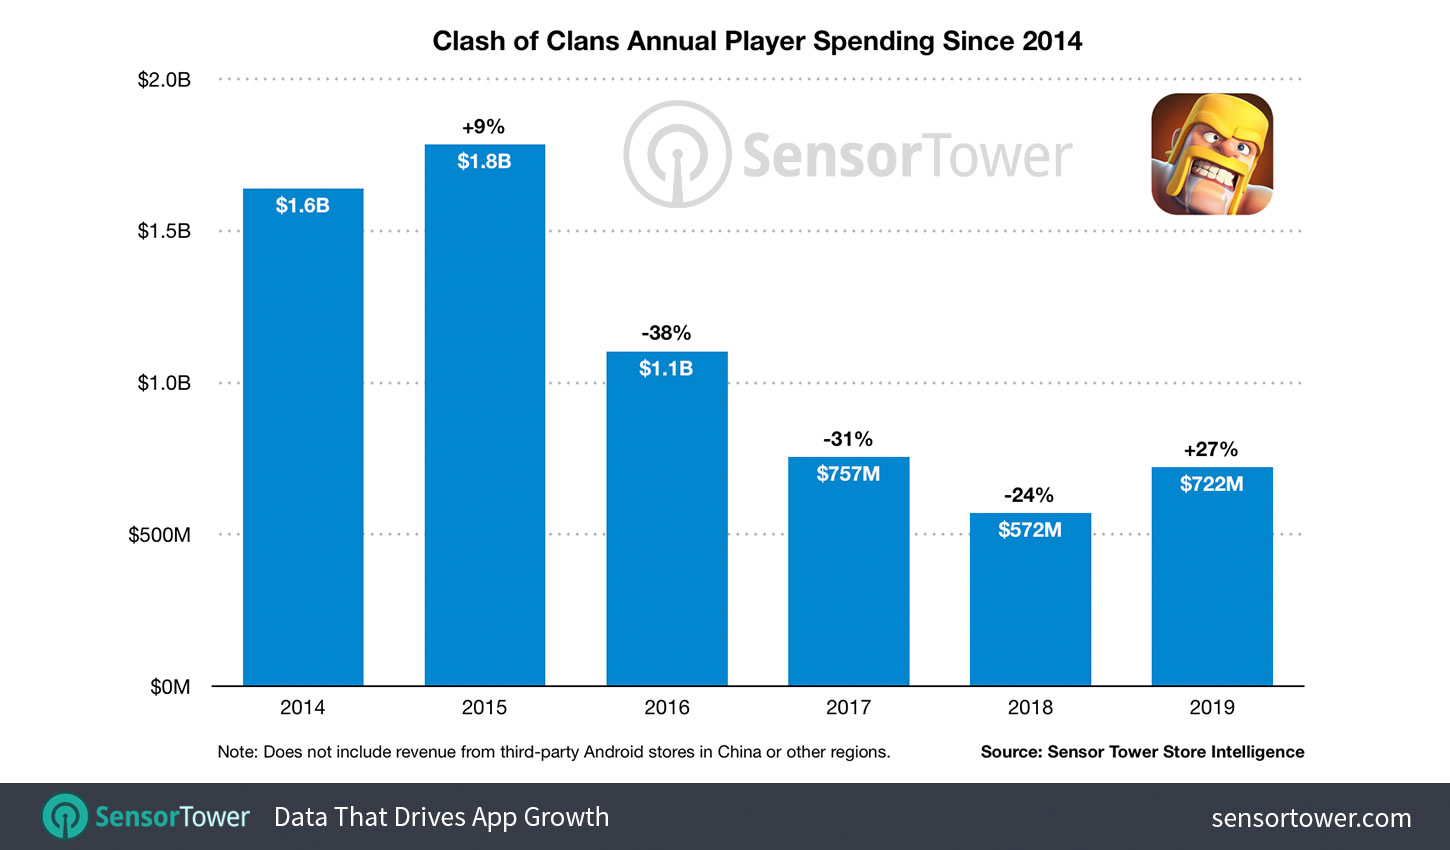 """Clash of Clans Annual Player Spending Since 2014"